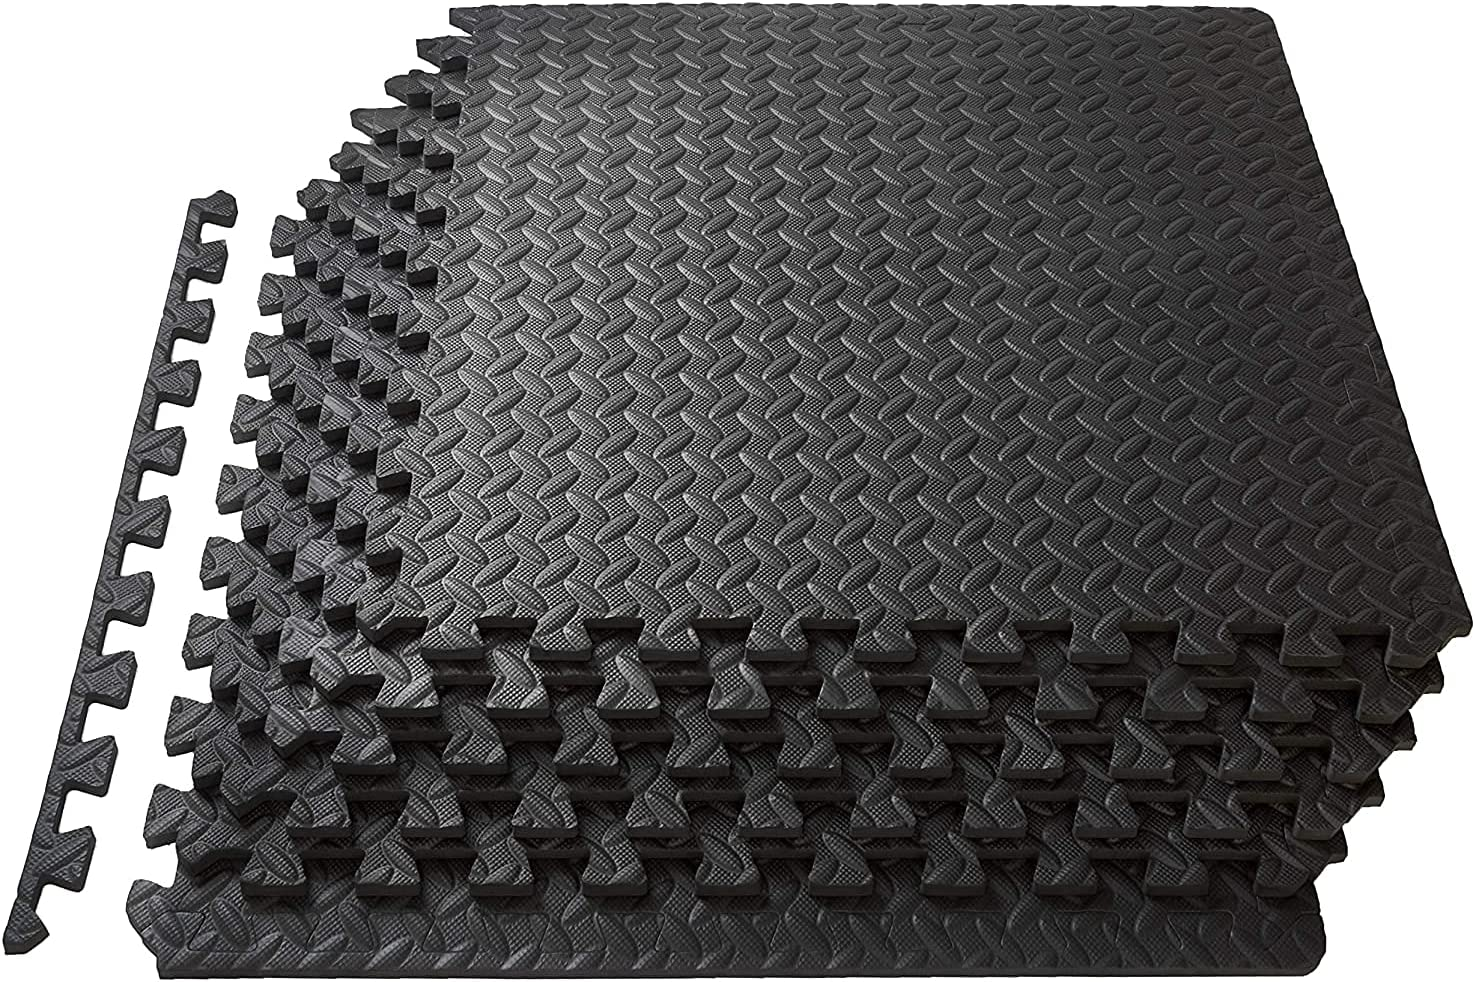 Hopesprout Puzzle Exercise New York Mall Mat Anti-Slid safety with Gym Flooring